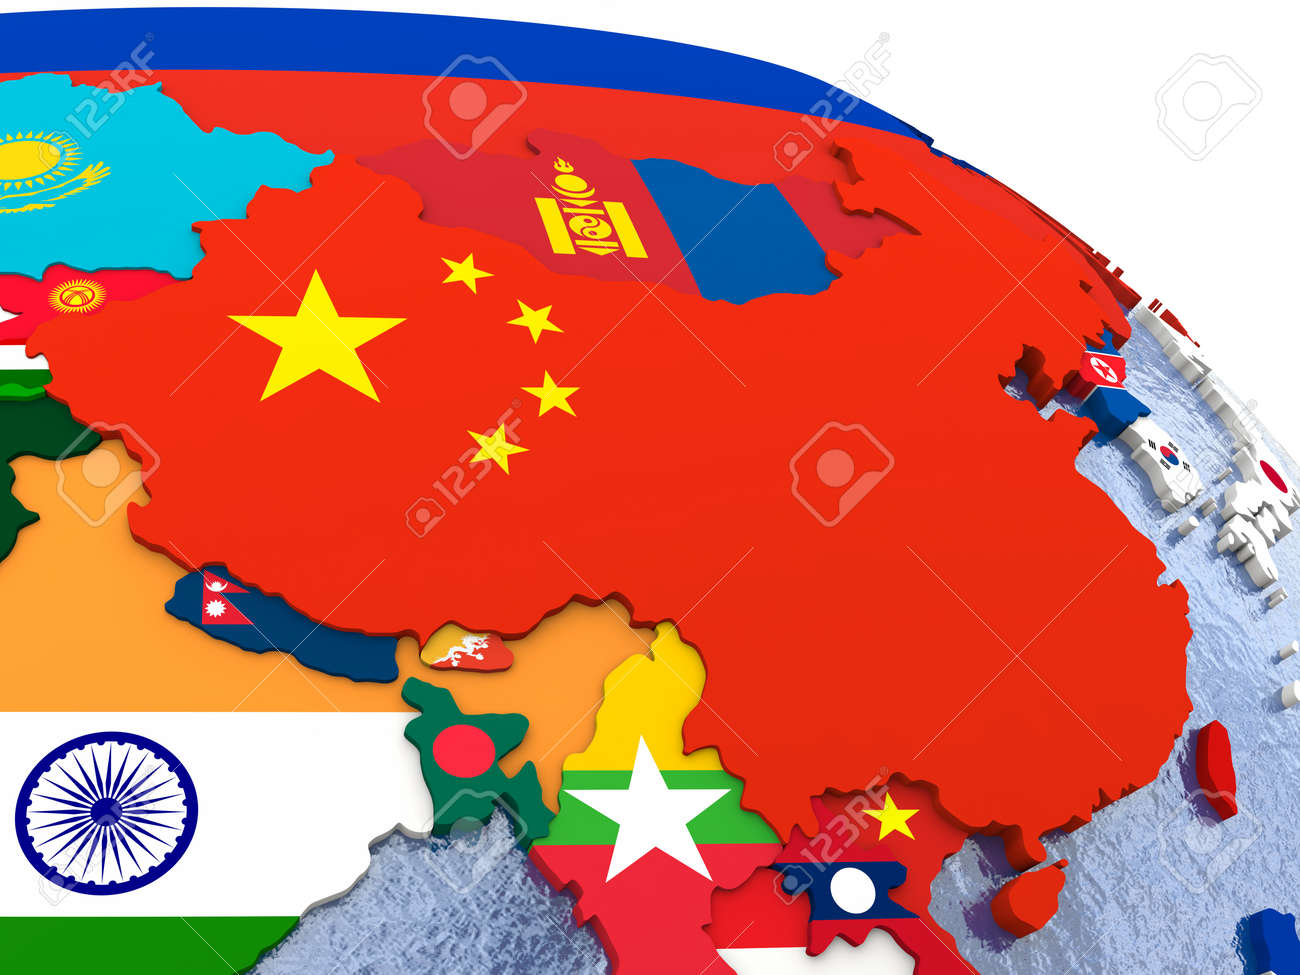 China - Political Map Of China And Surrounding Region With Each ...